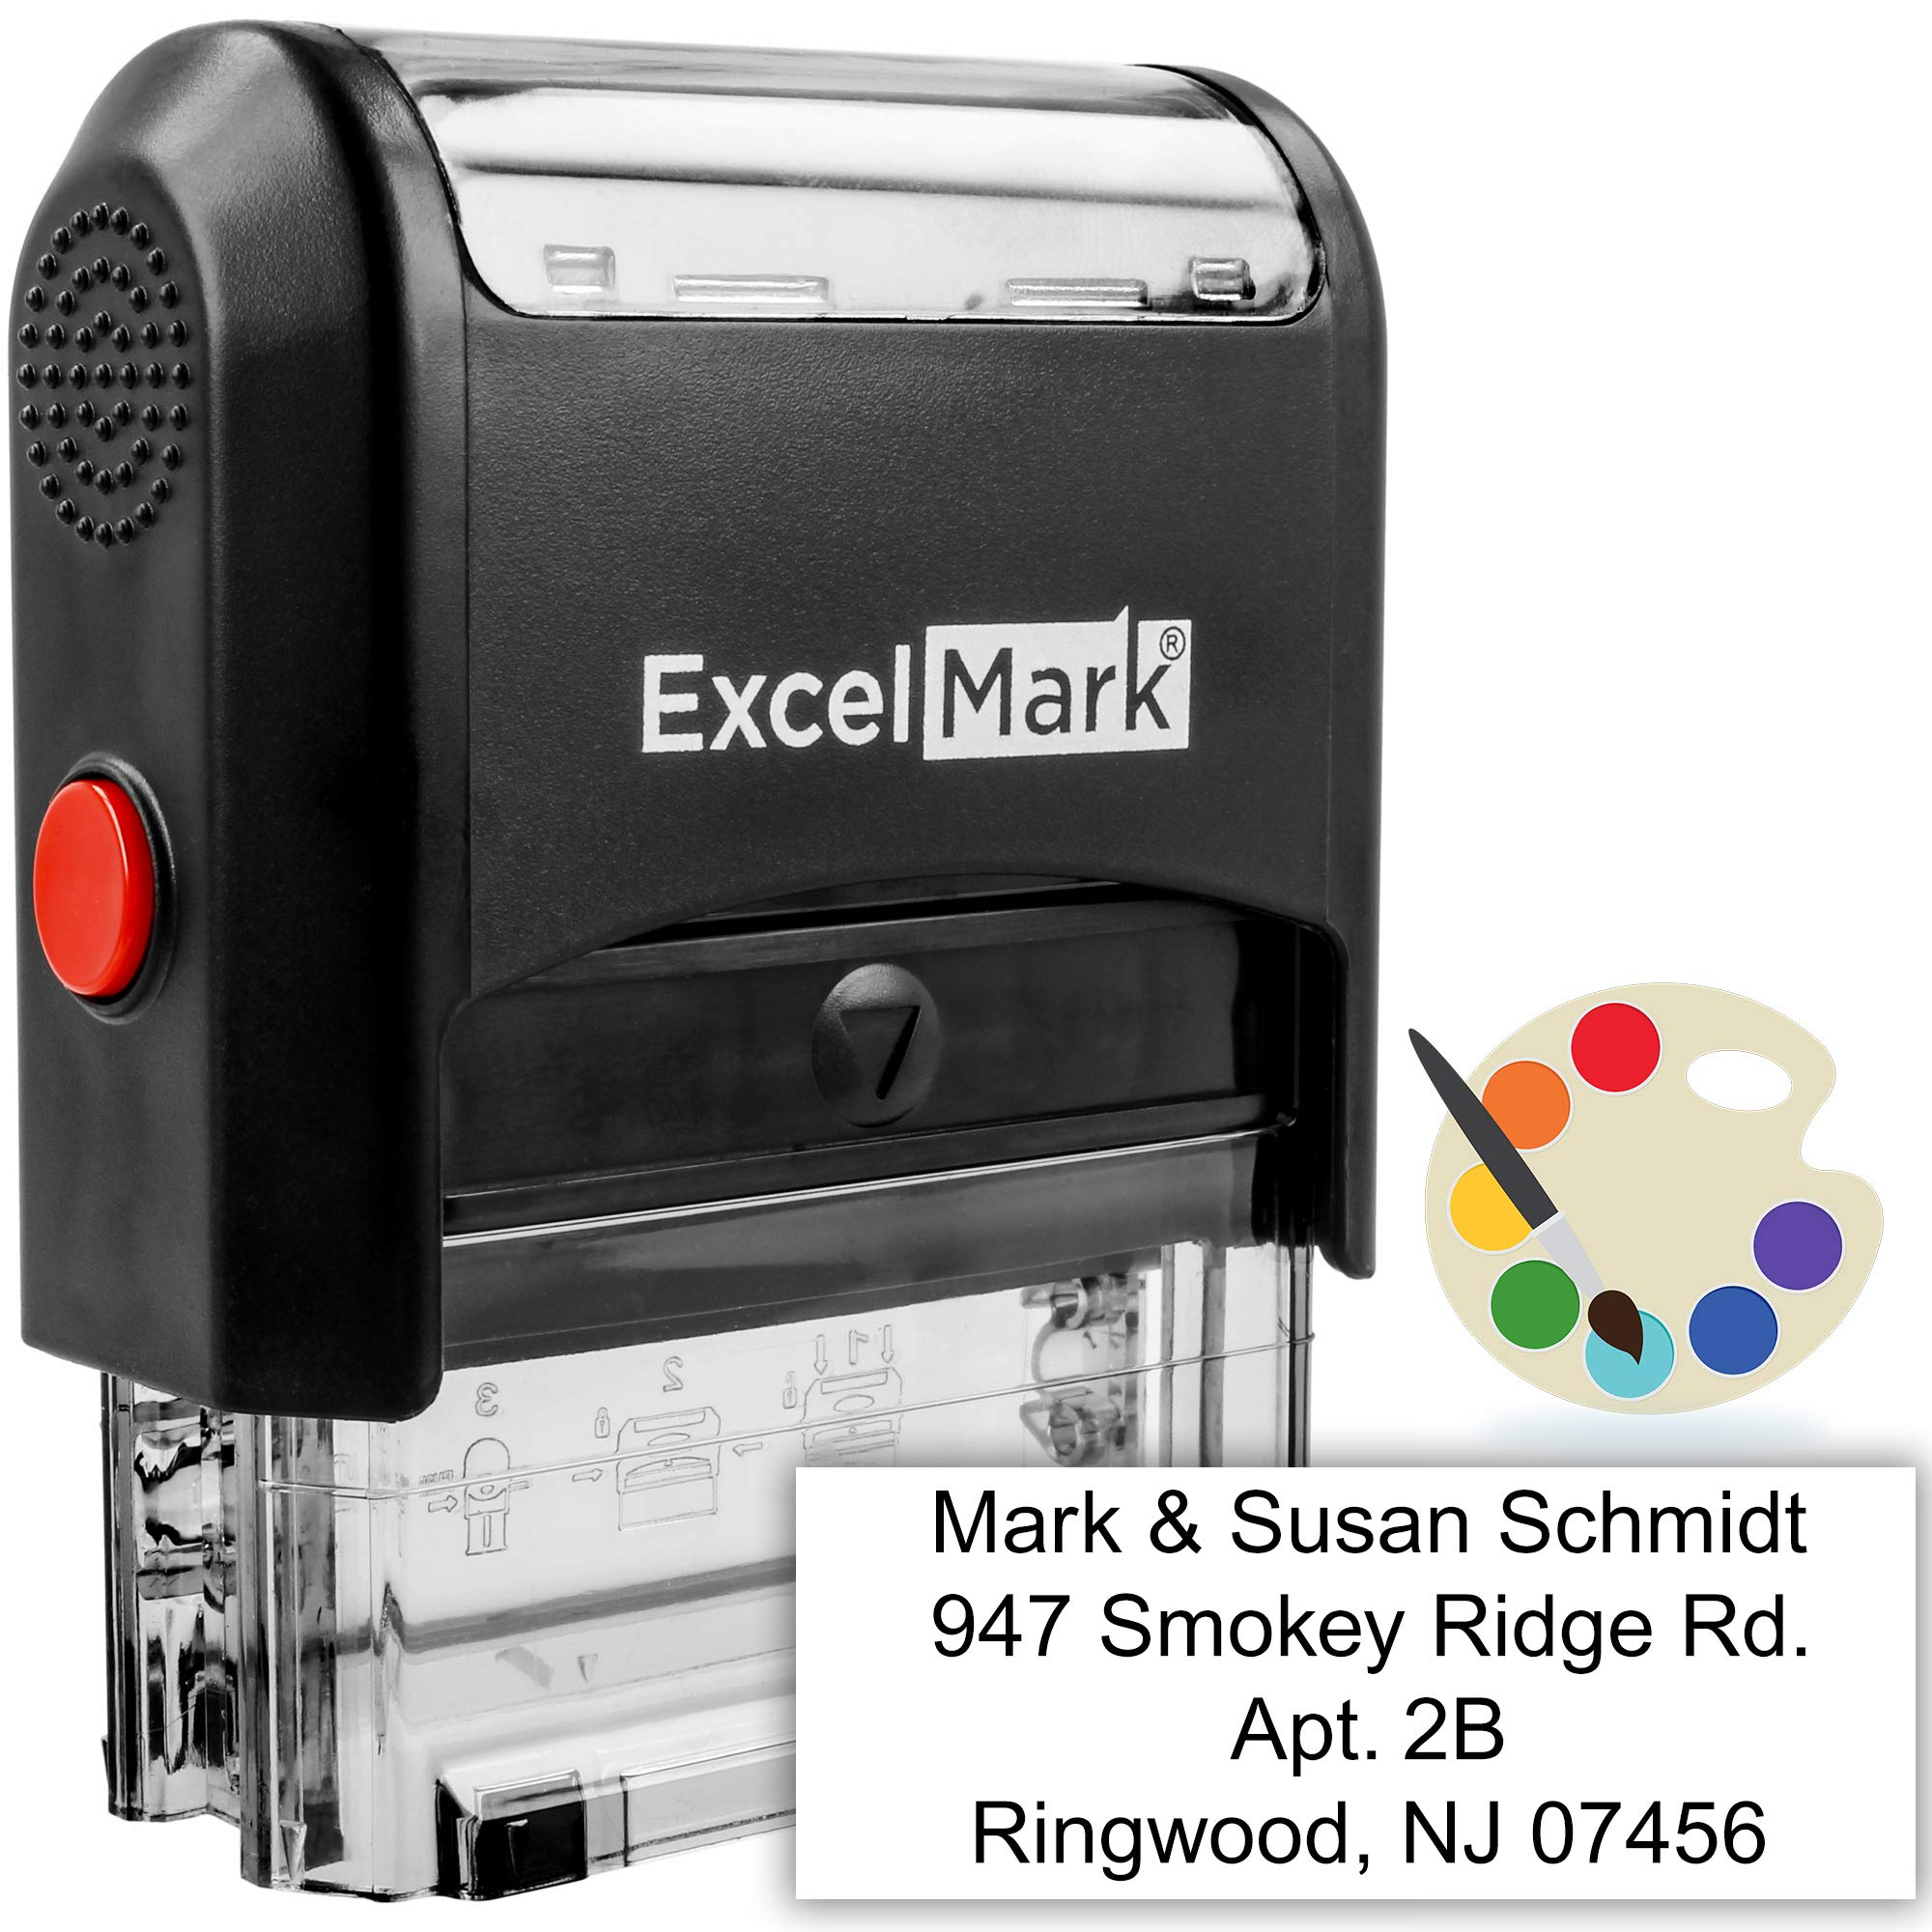 Self Inking Rubber Stamp with up to 4 Lines of Custom Text (42A1848) by ExcelMark